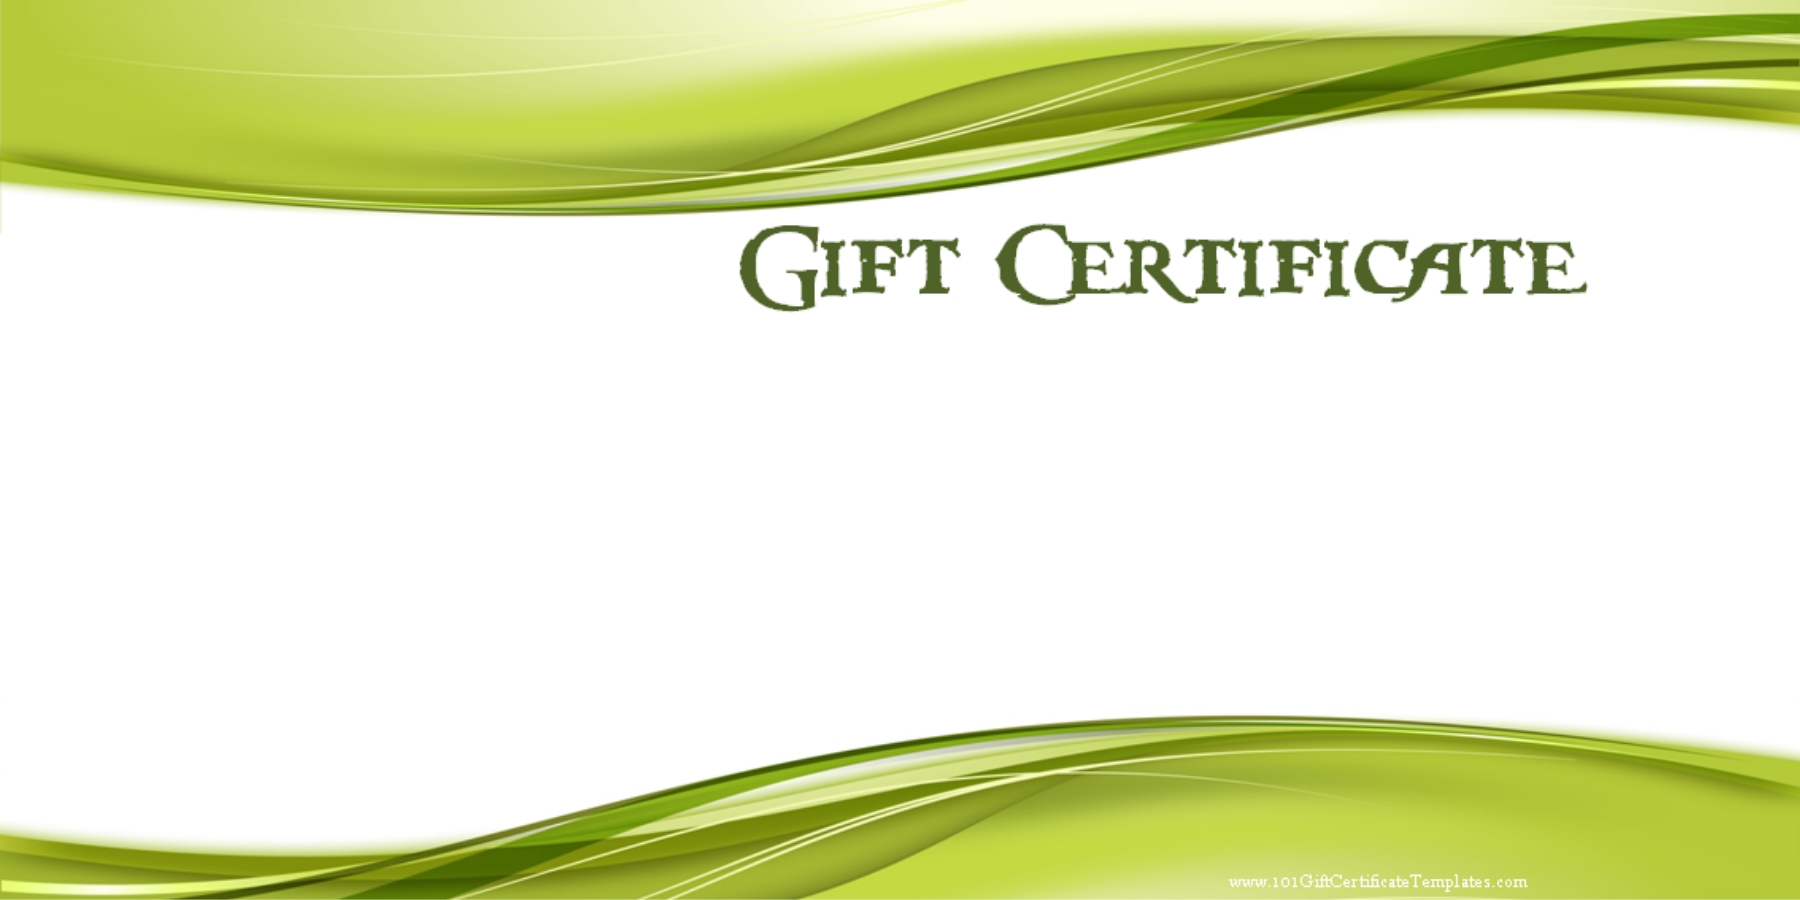 Gift certificate template fotolip rich image and wallpaper gift certificate template yadclub Images